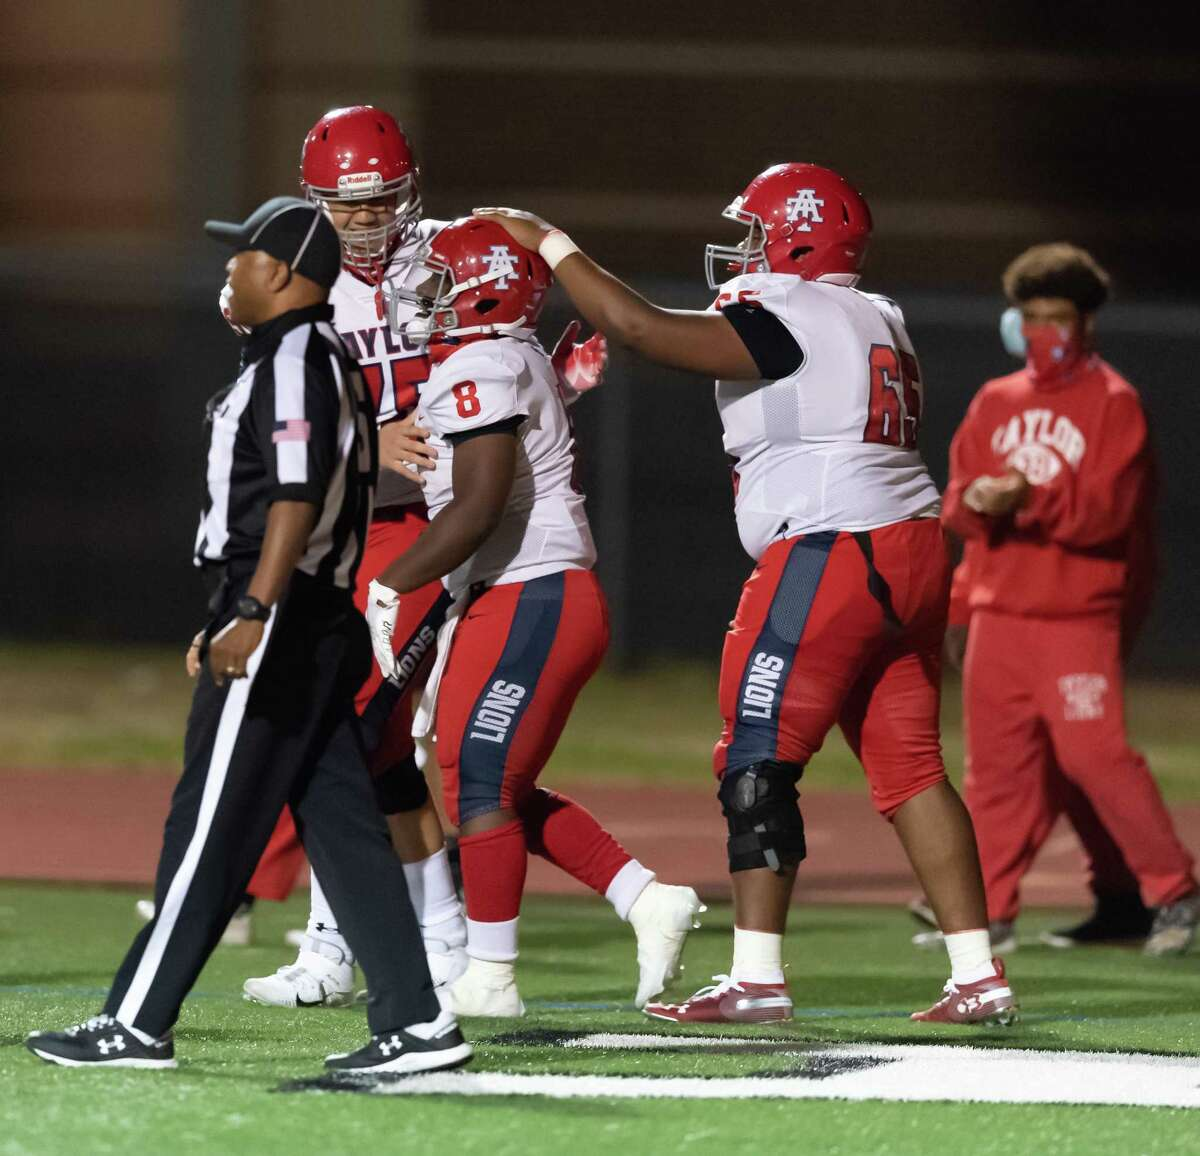 Jourdan Concepcion (8) of the Alief Taylor Lions celebrates his touchdown in the second half with his teammates against the Alief Elsik Rams during a High School football game on Friday, October 16, 2020 at Crump Stadium in Houston Texas.